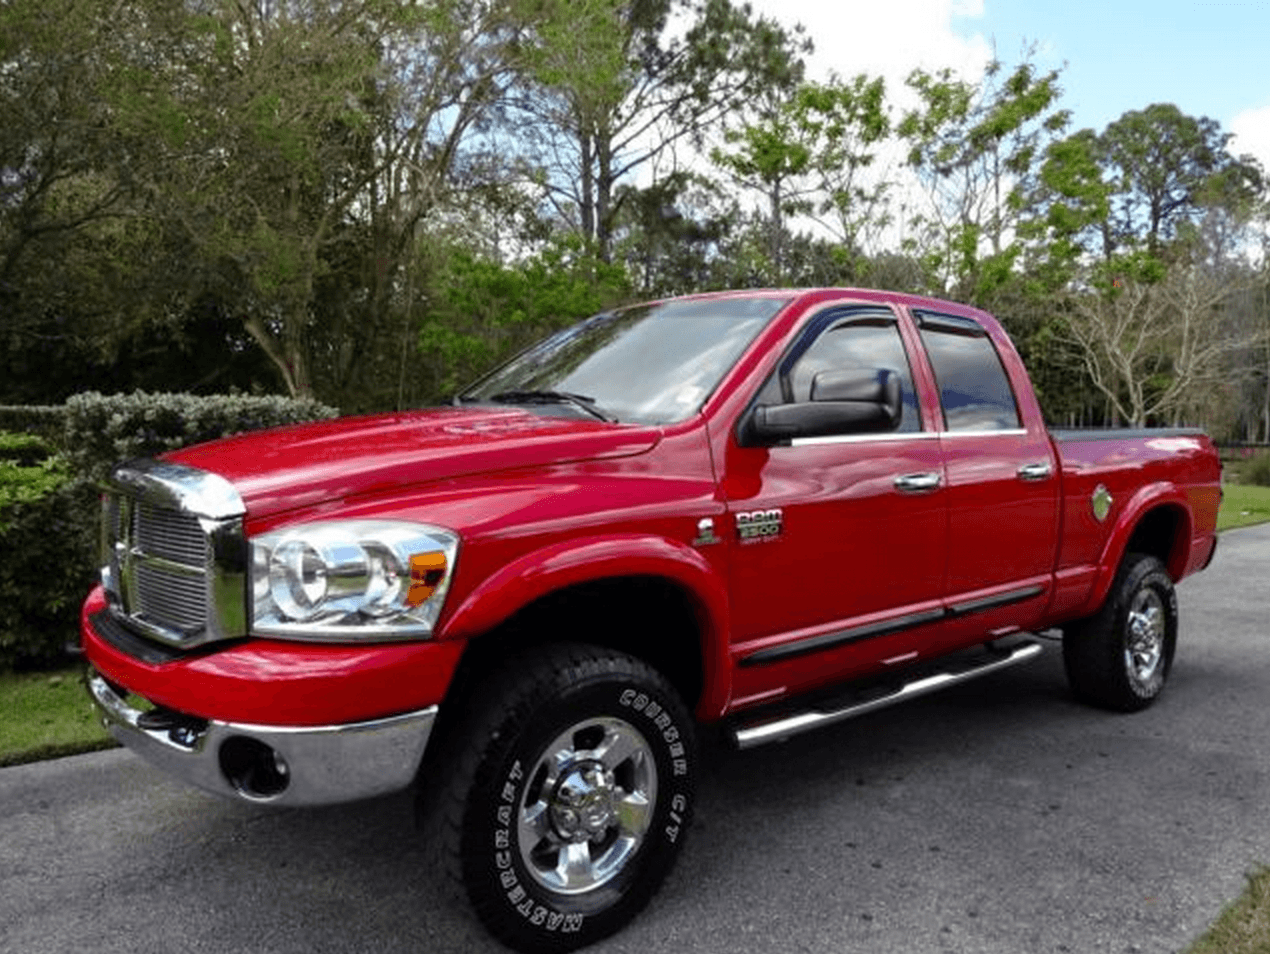 Trueedge street fender flares for 00 09 dodge ram available factory painted flz109203